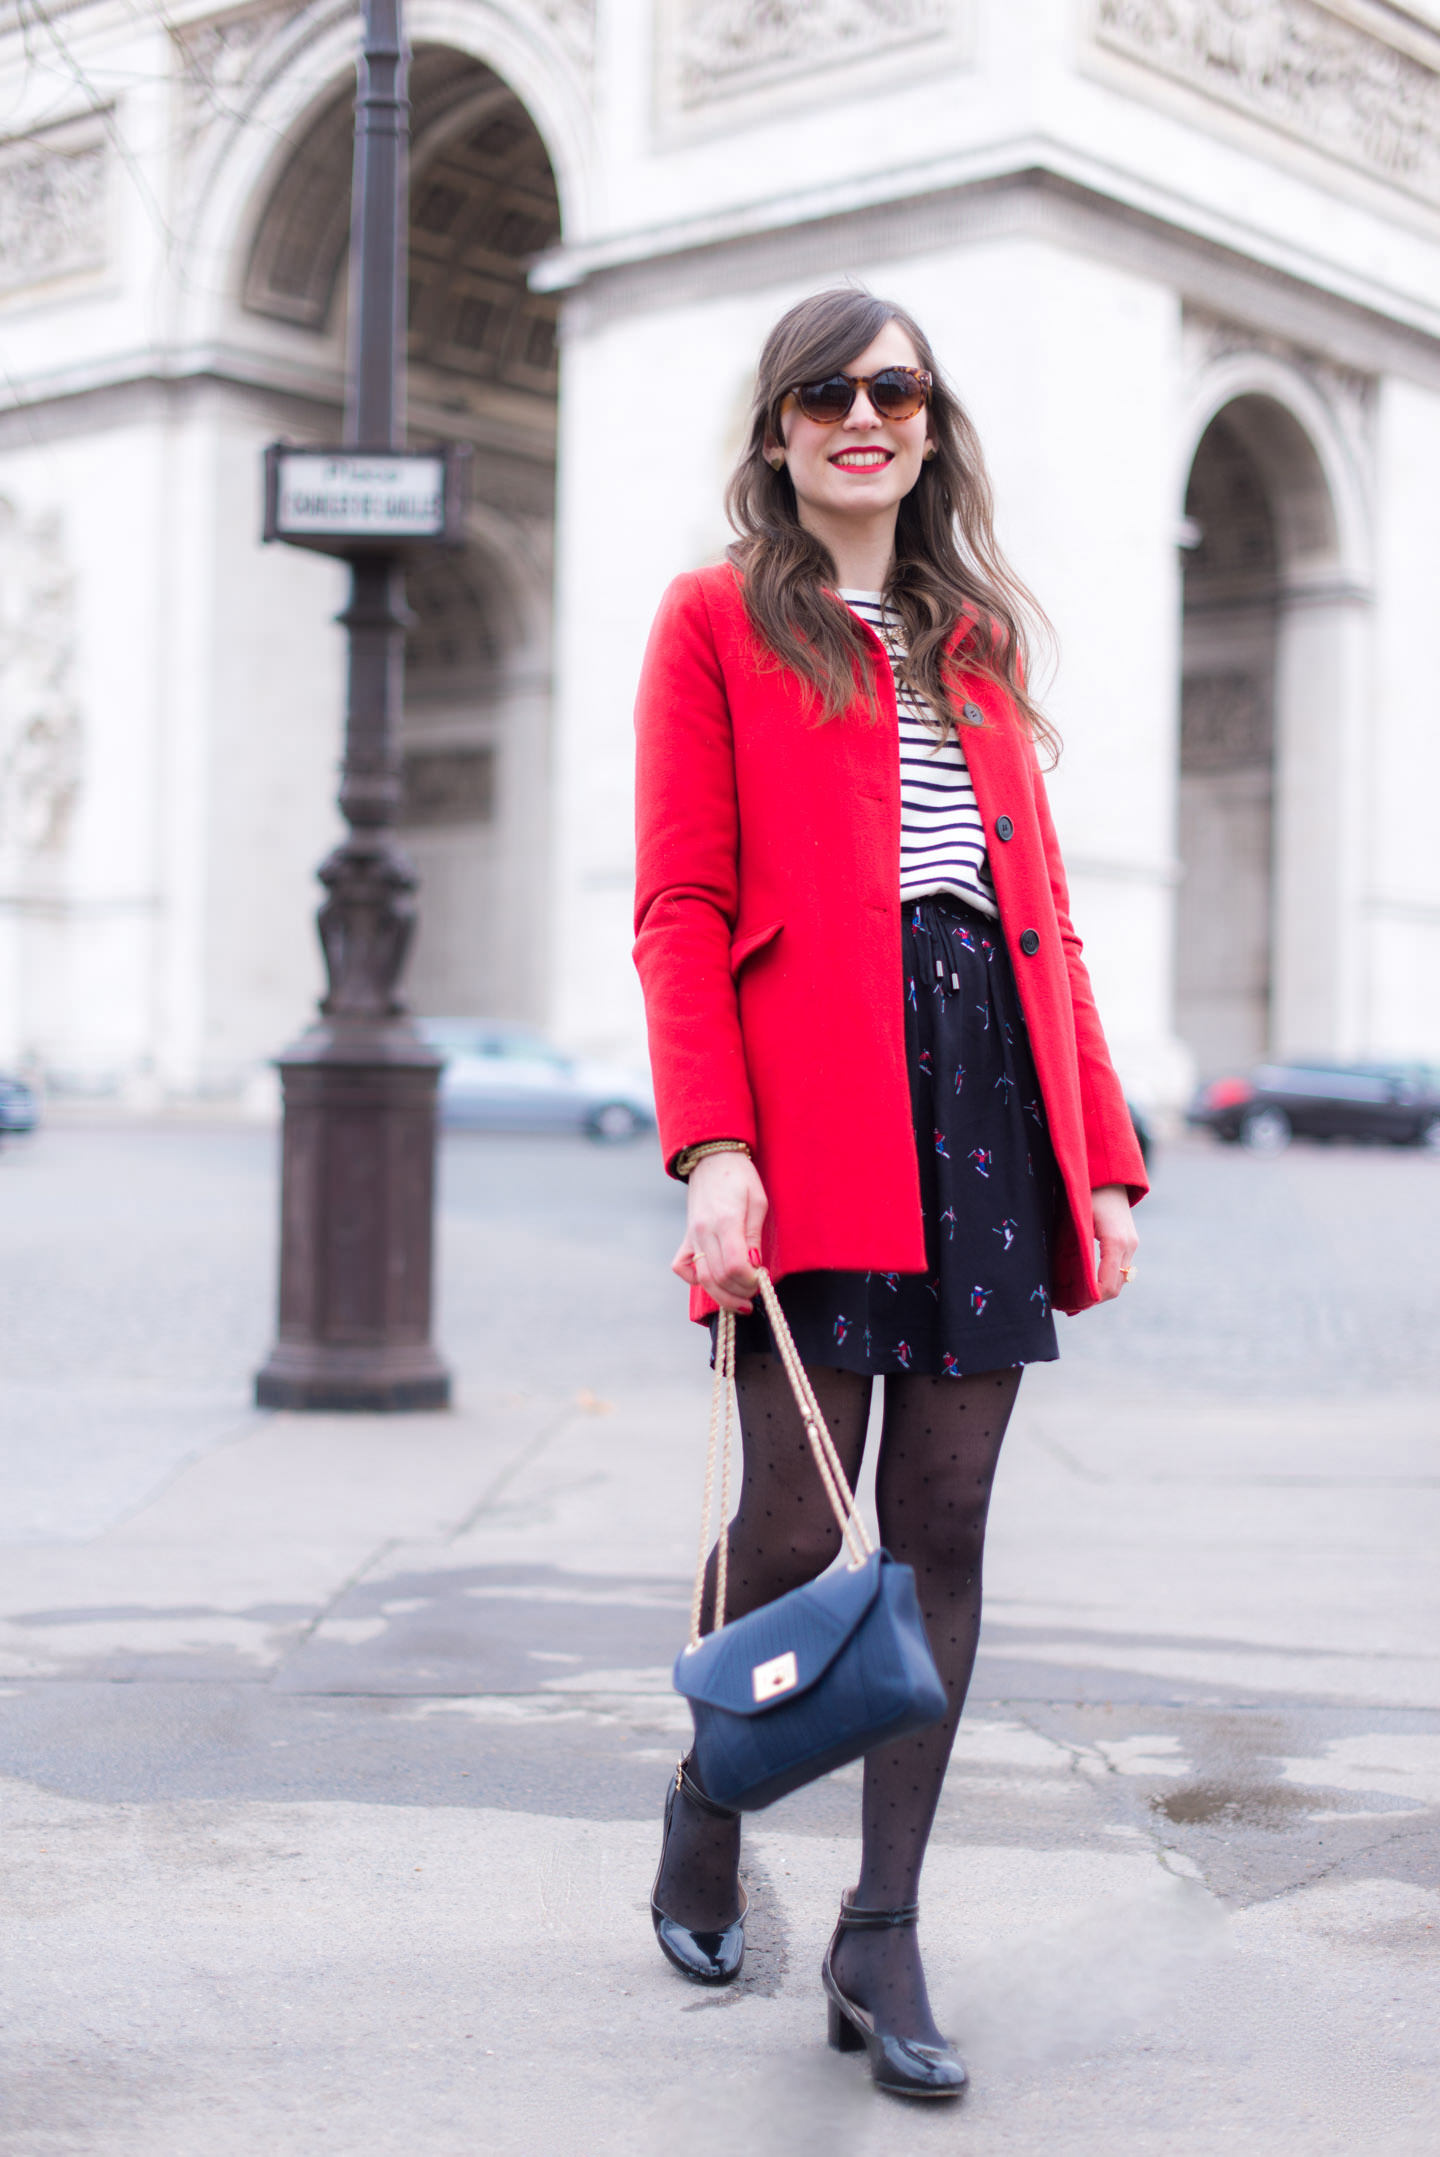 Blog-Mode-And-The-City-Looks-Au-Pied-Arc-Triomphe-Paris-11